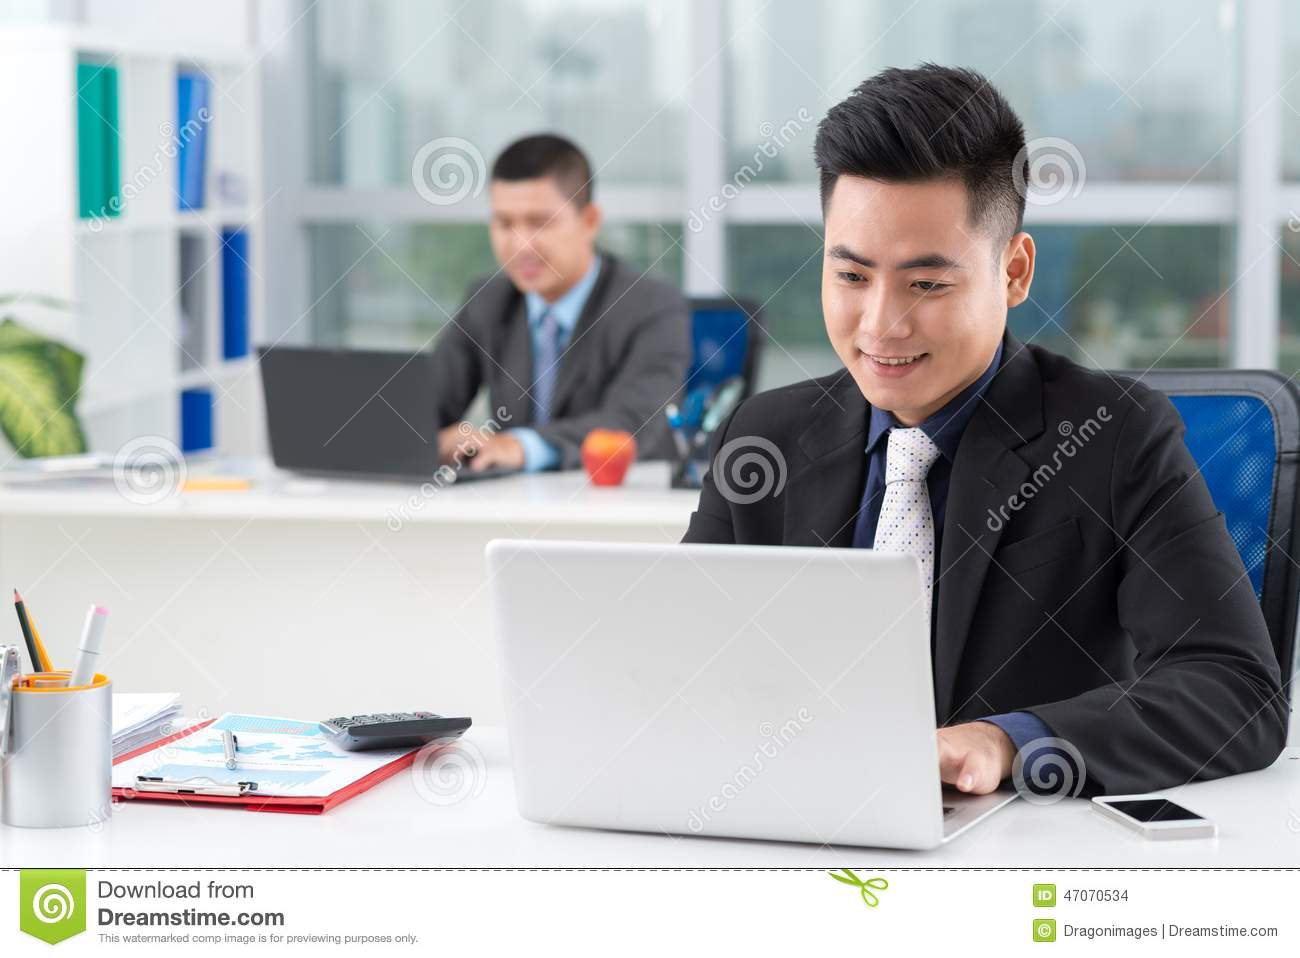 Financial Manager Stock Photo - Image: 47070534